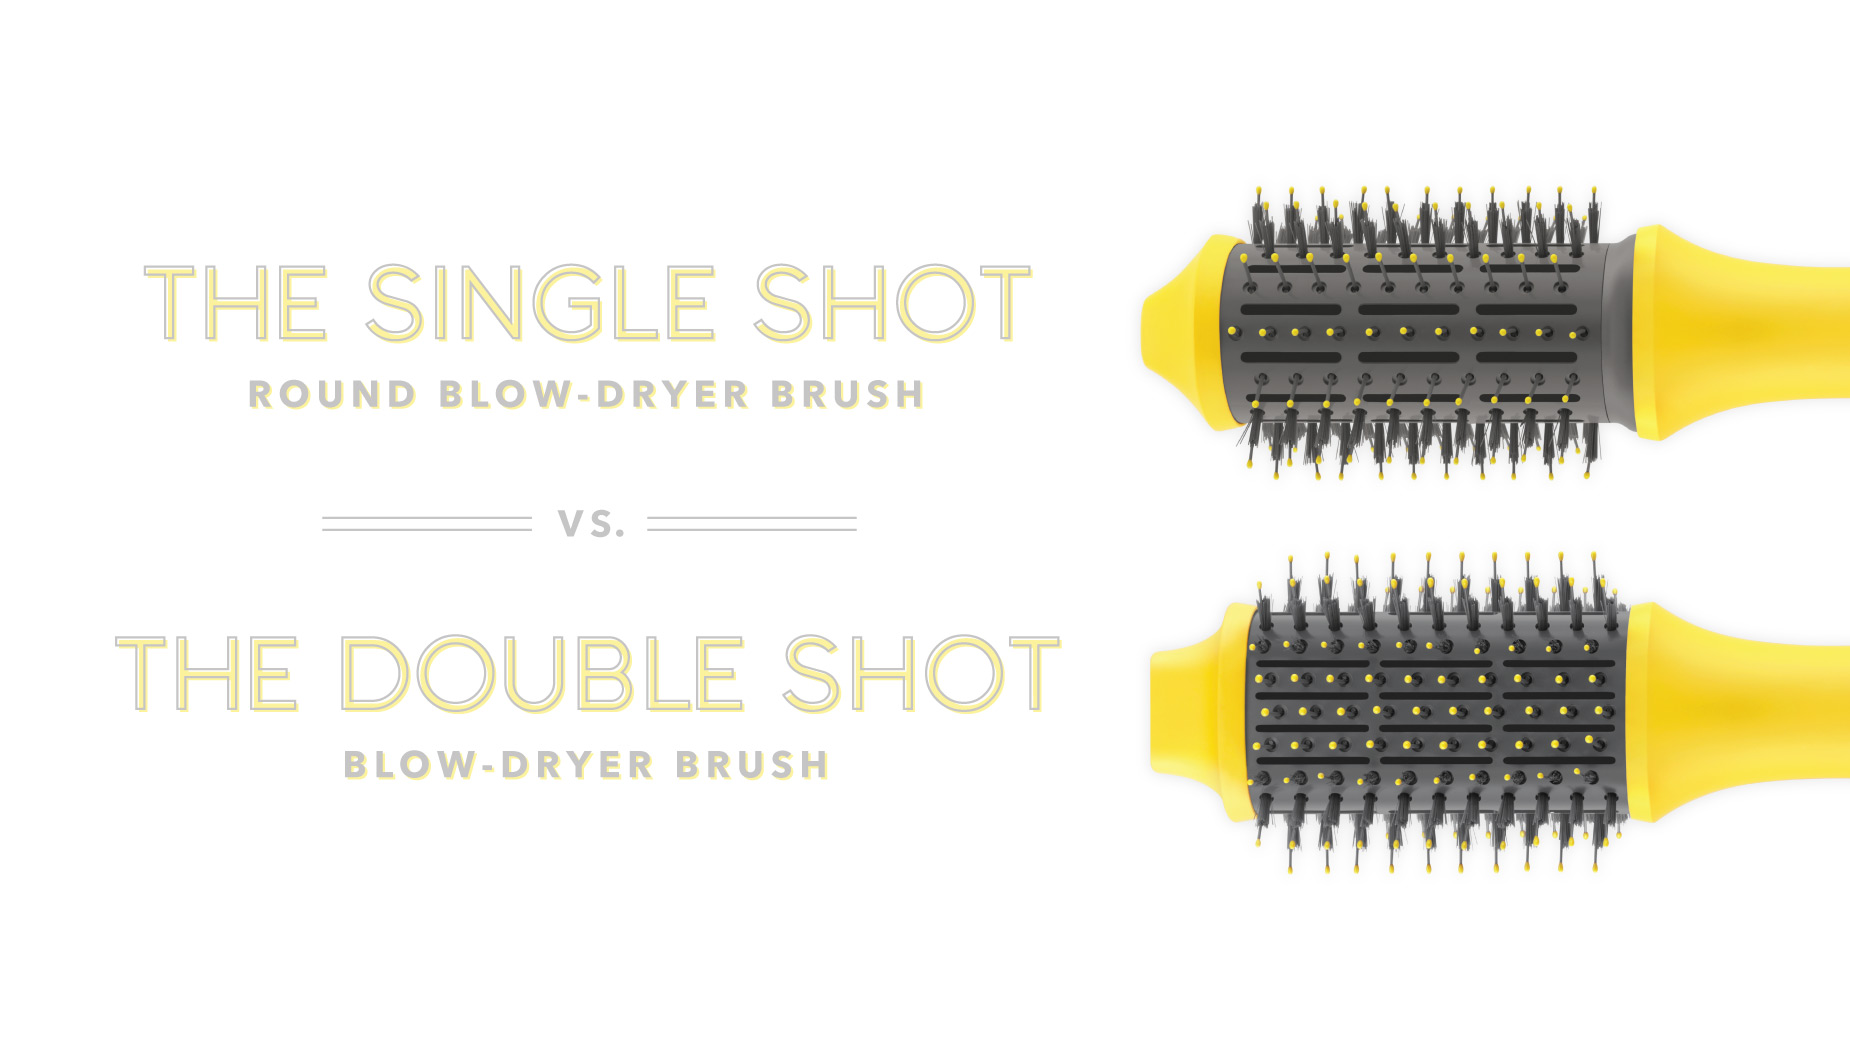 The Single Shot Vs. The Double Shot Blow-Dryer Brushes Video